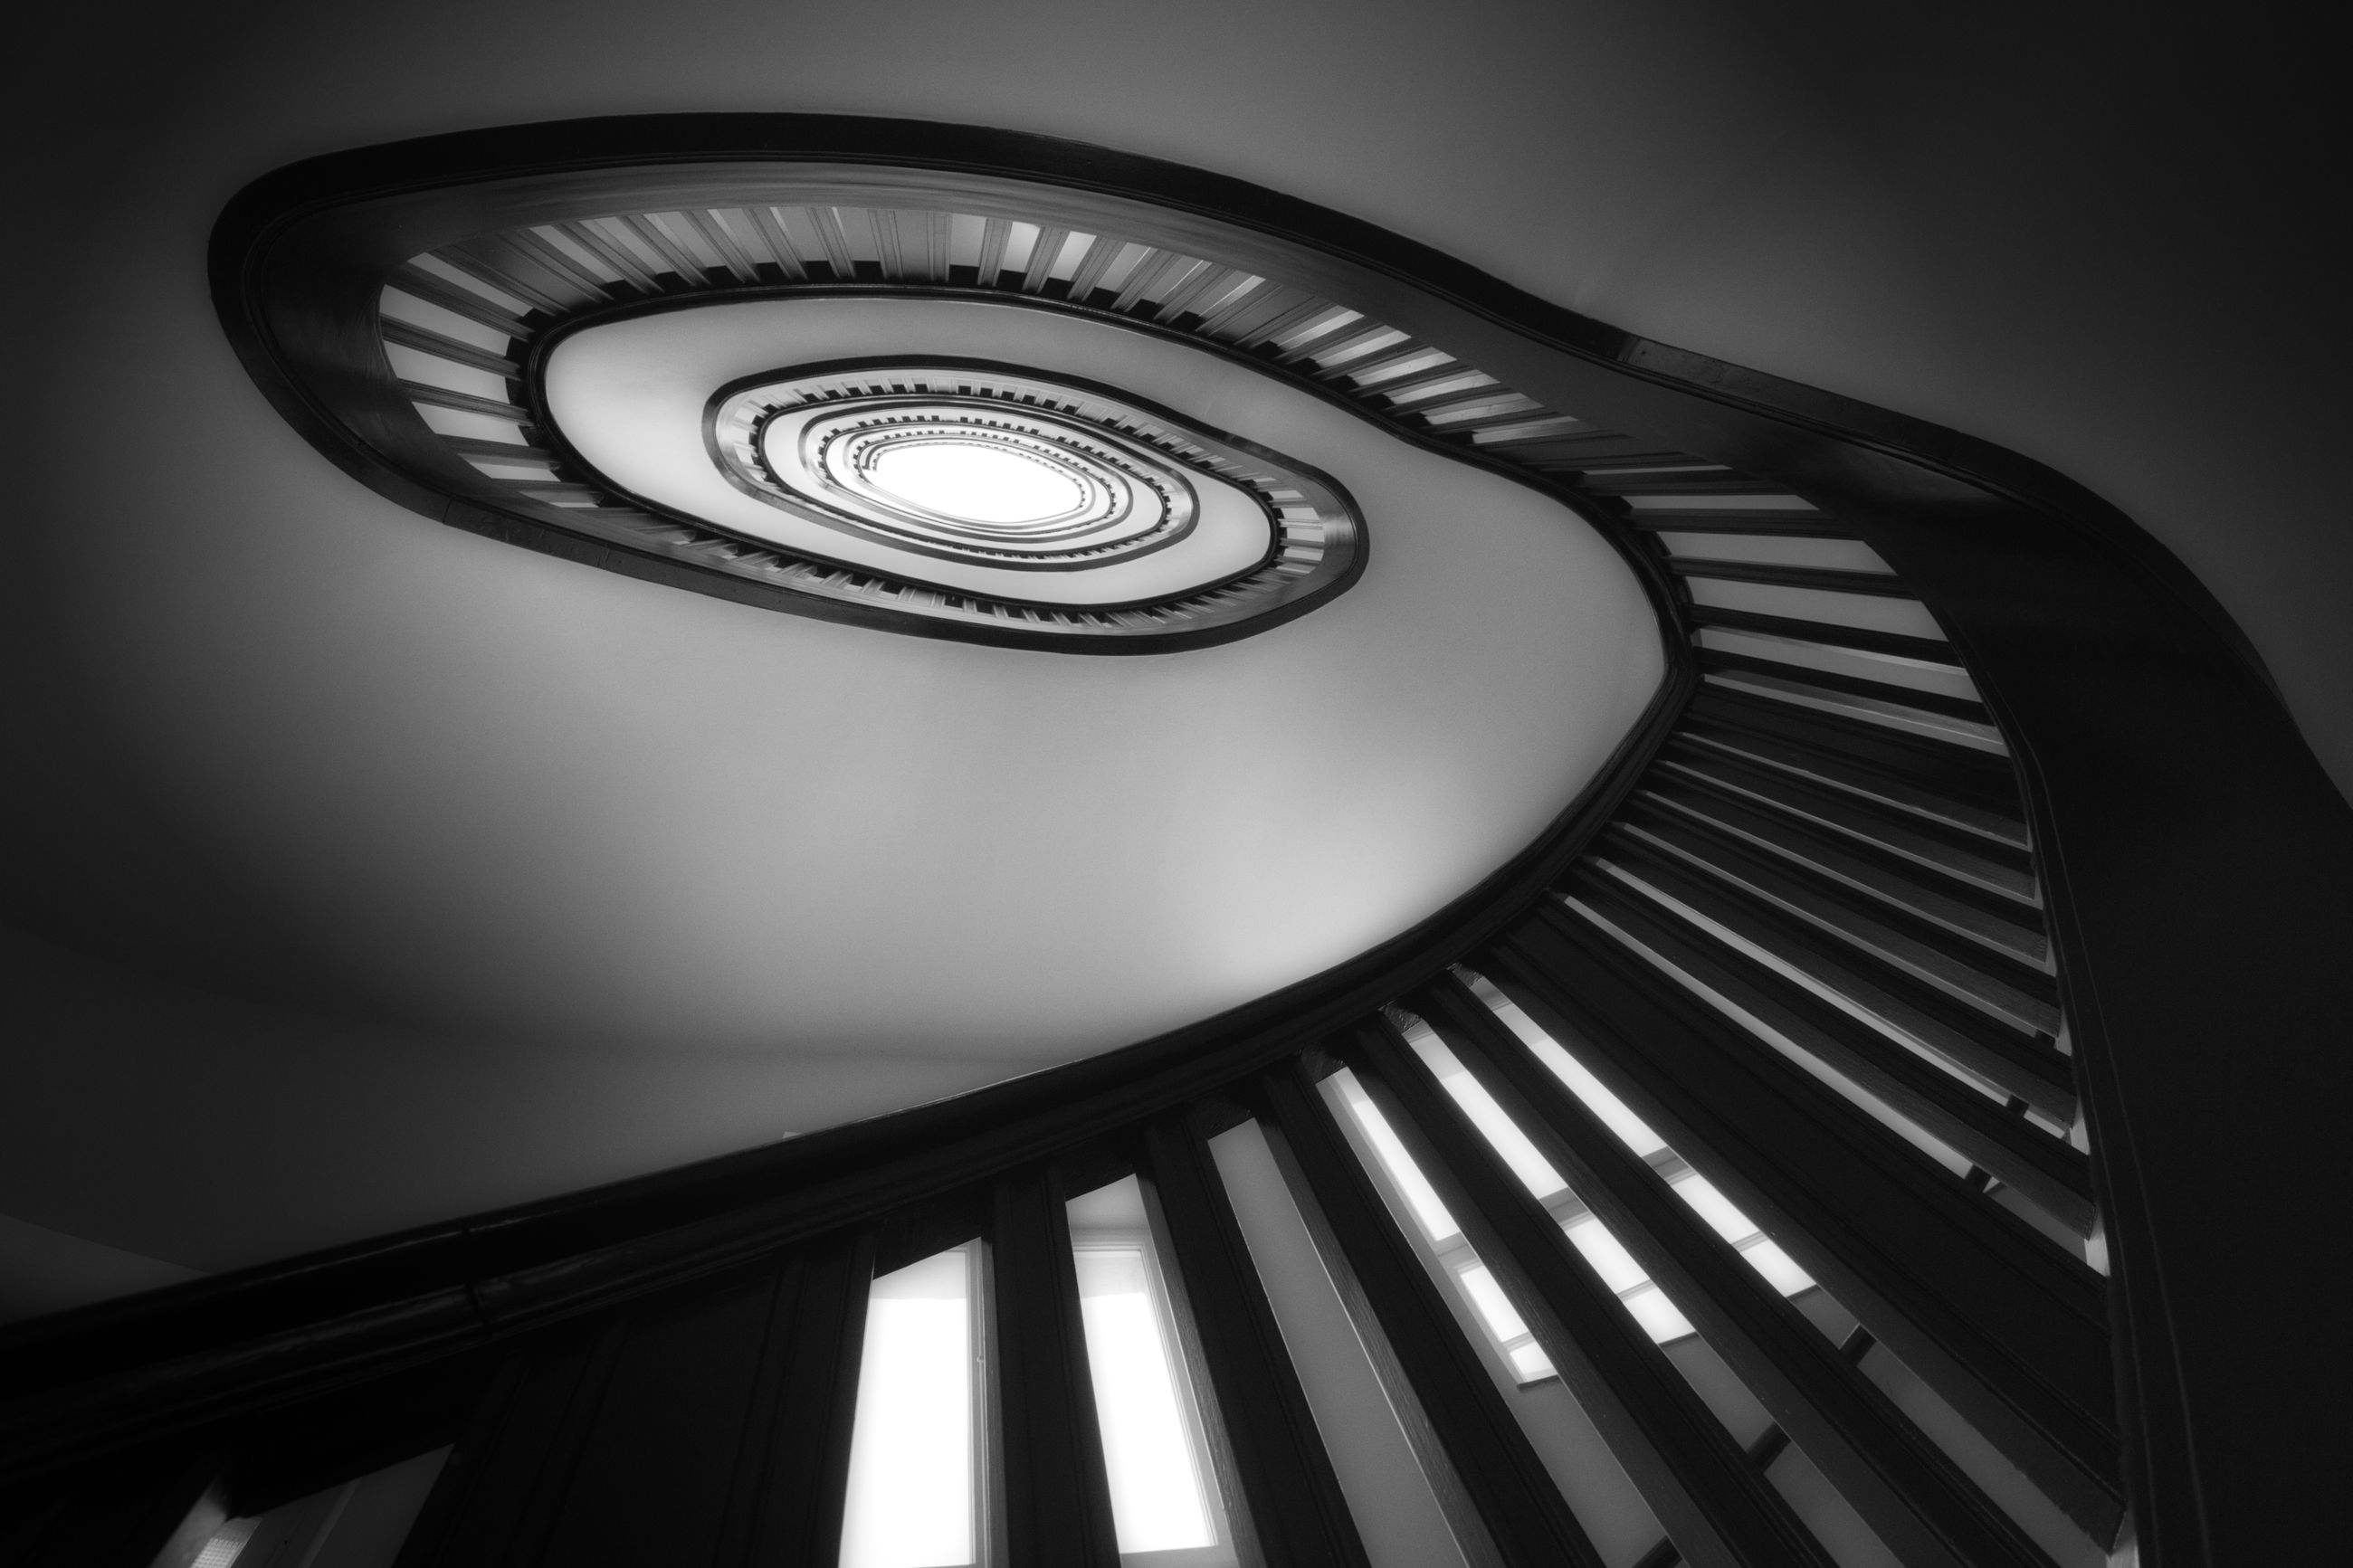 LOW ANGLE VIEW OF SPIRAL STAIRCASE ON BUILDING